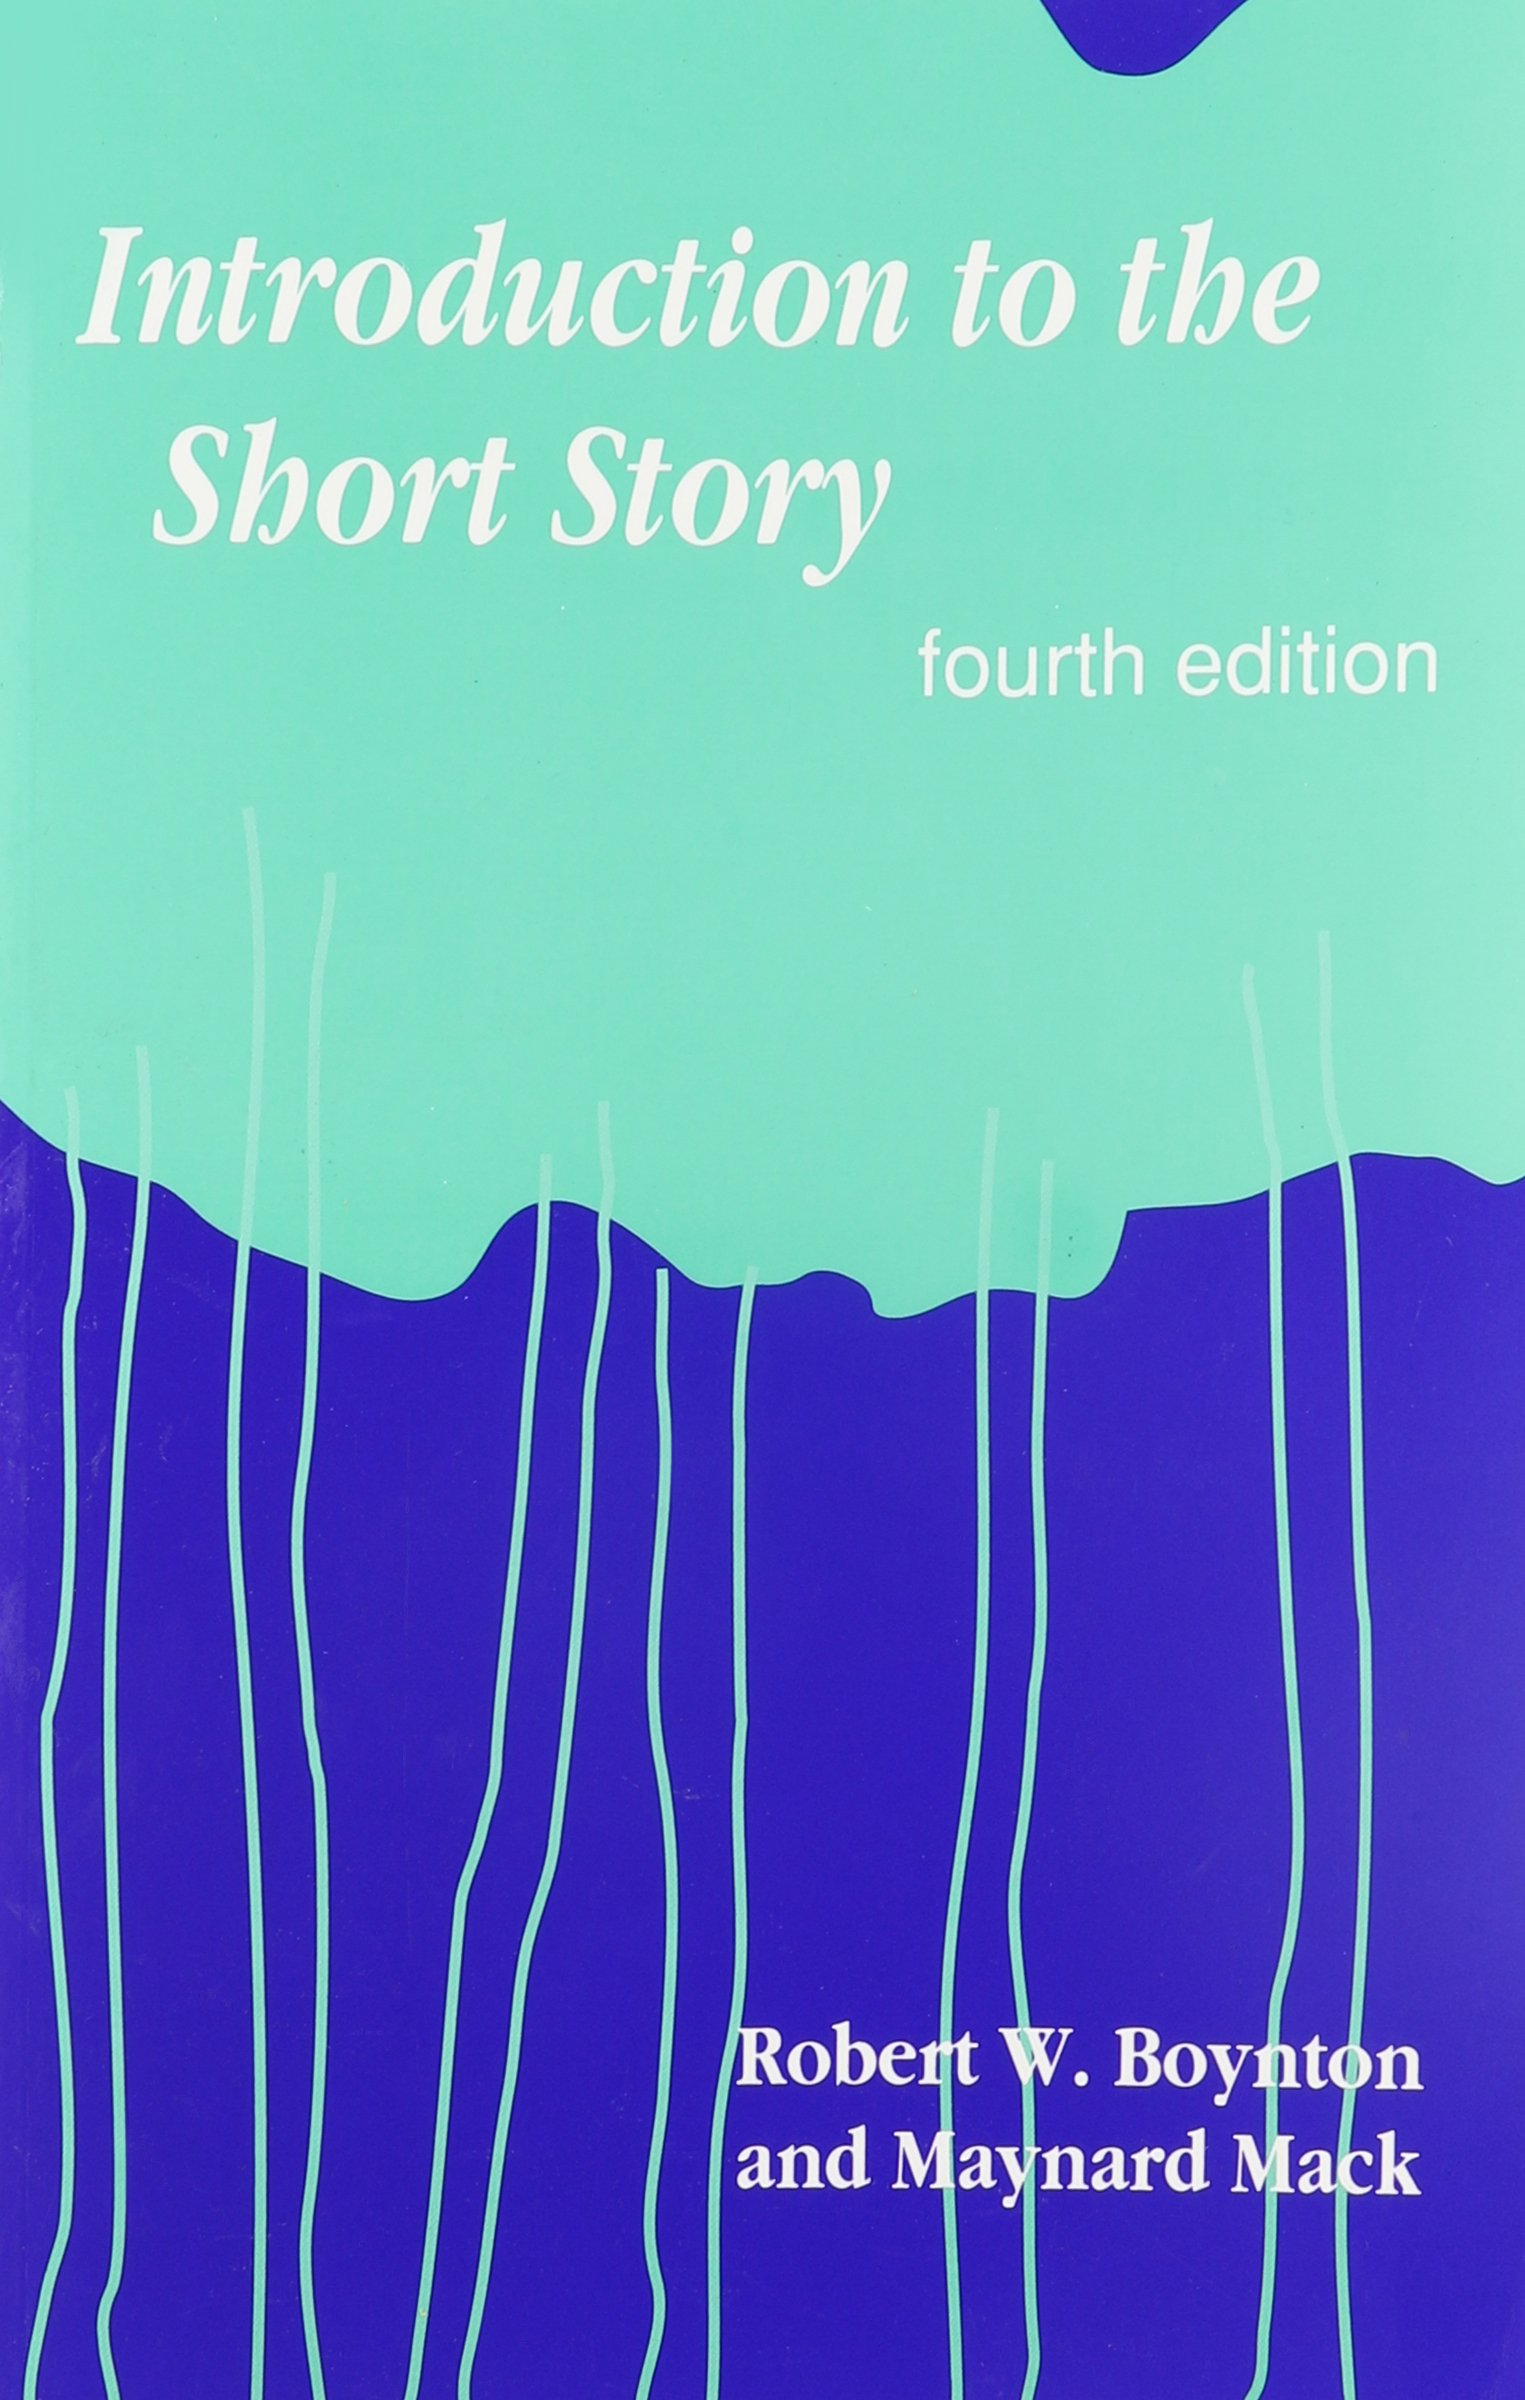 Introduction to the Short Story (Heinemann/Cassell Language & Literacy)